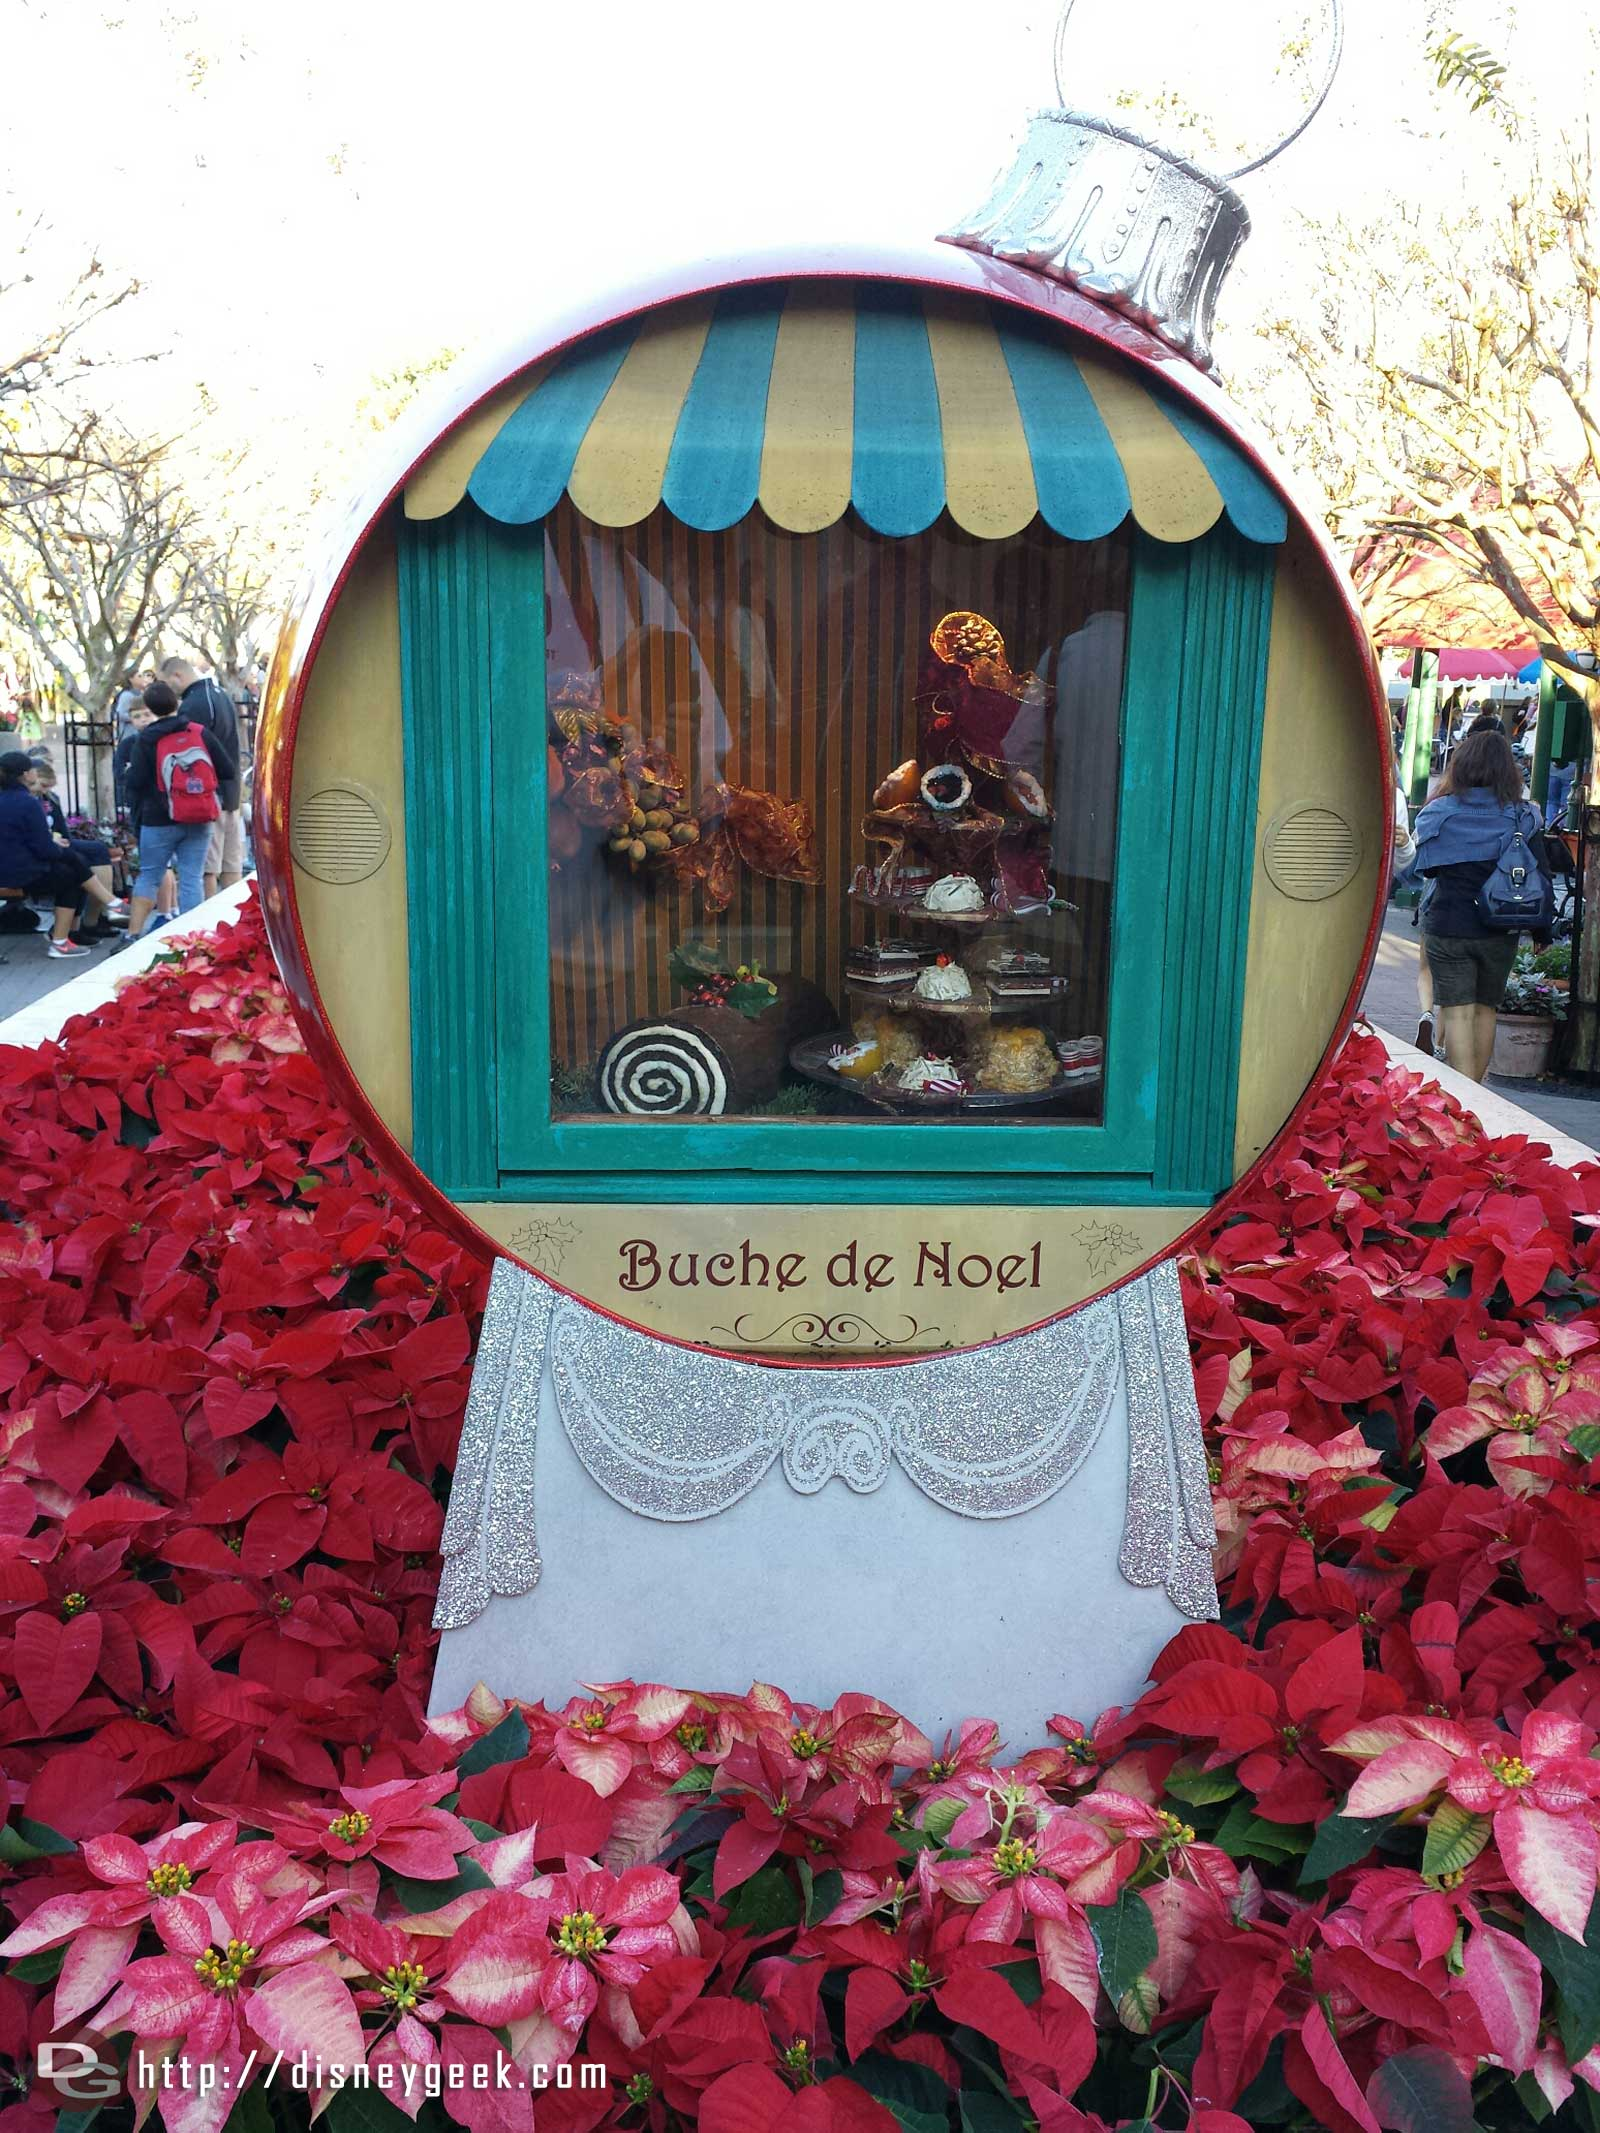 Buche de Noel display in France, #Epcot World Showcase